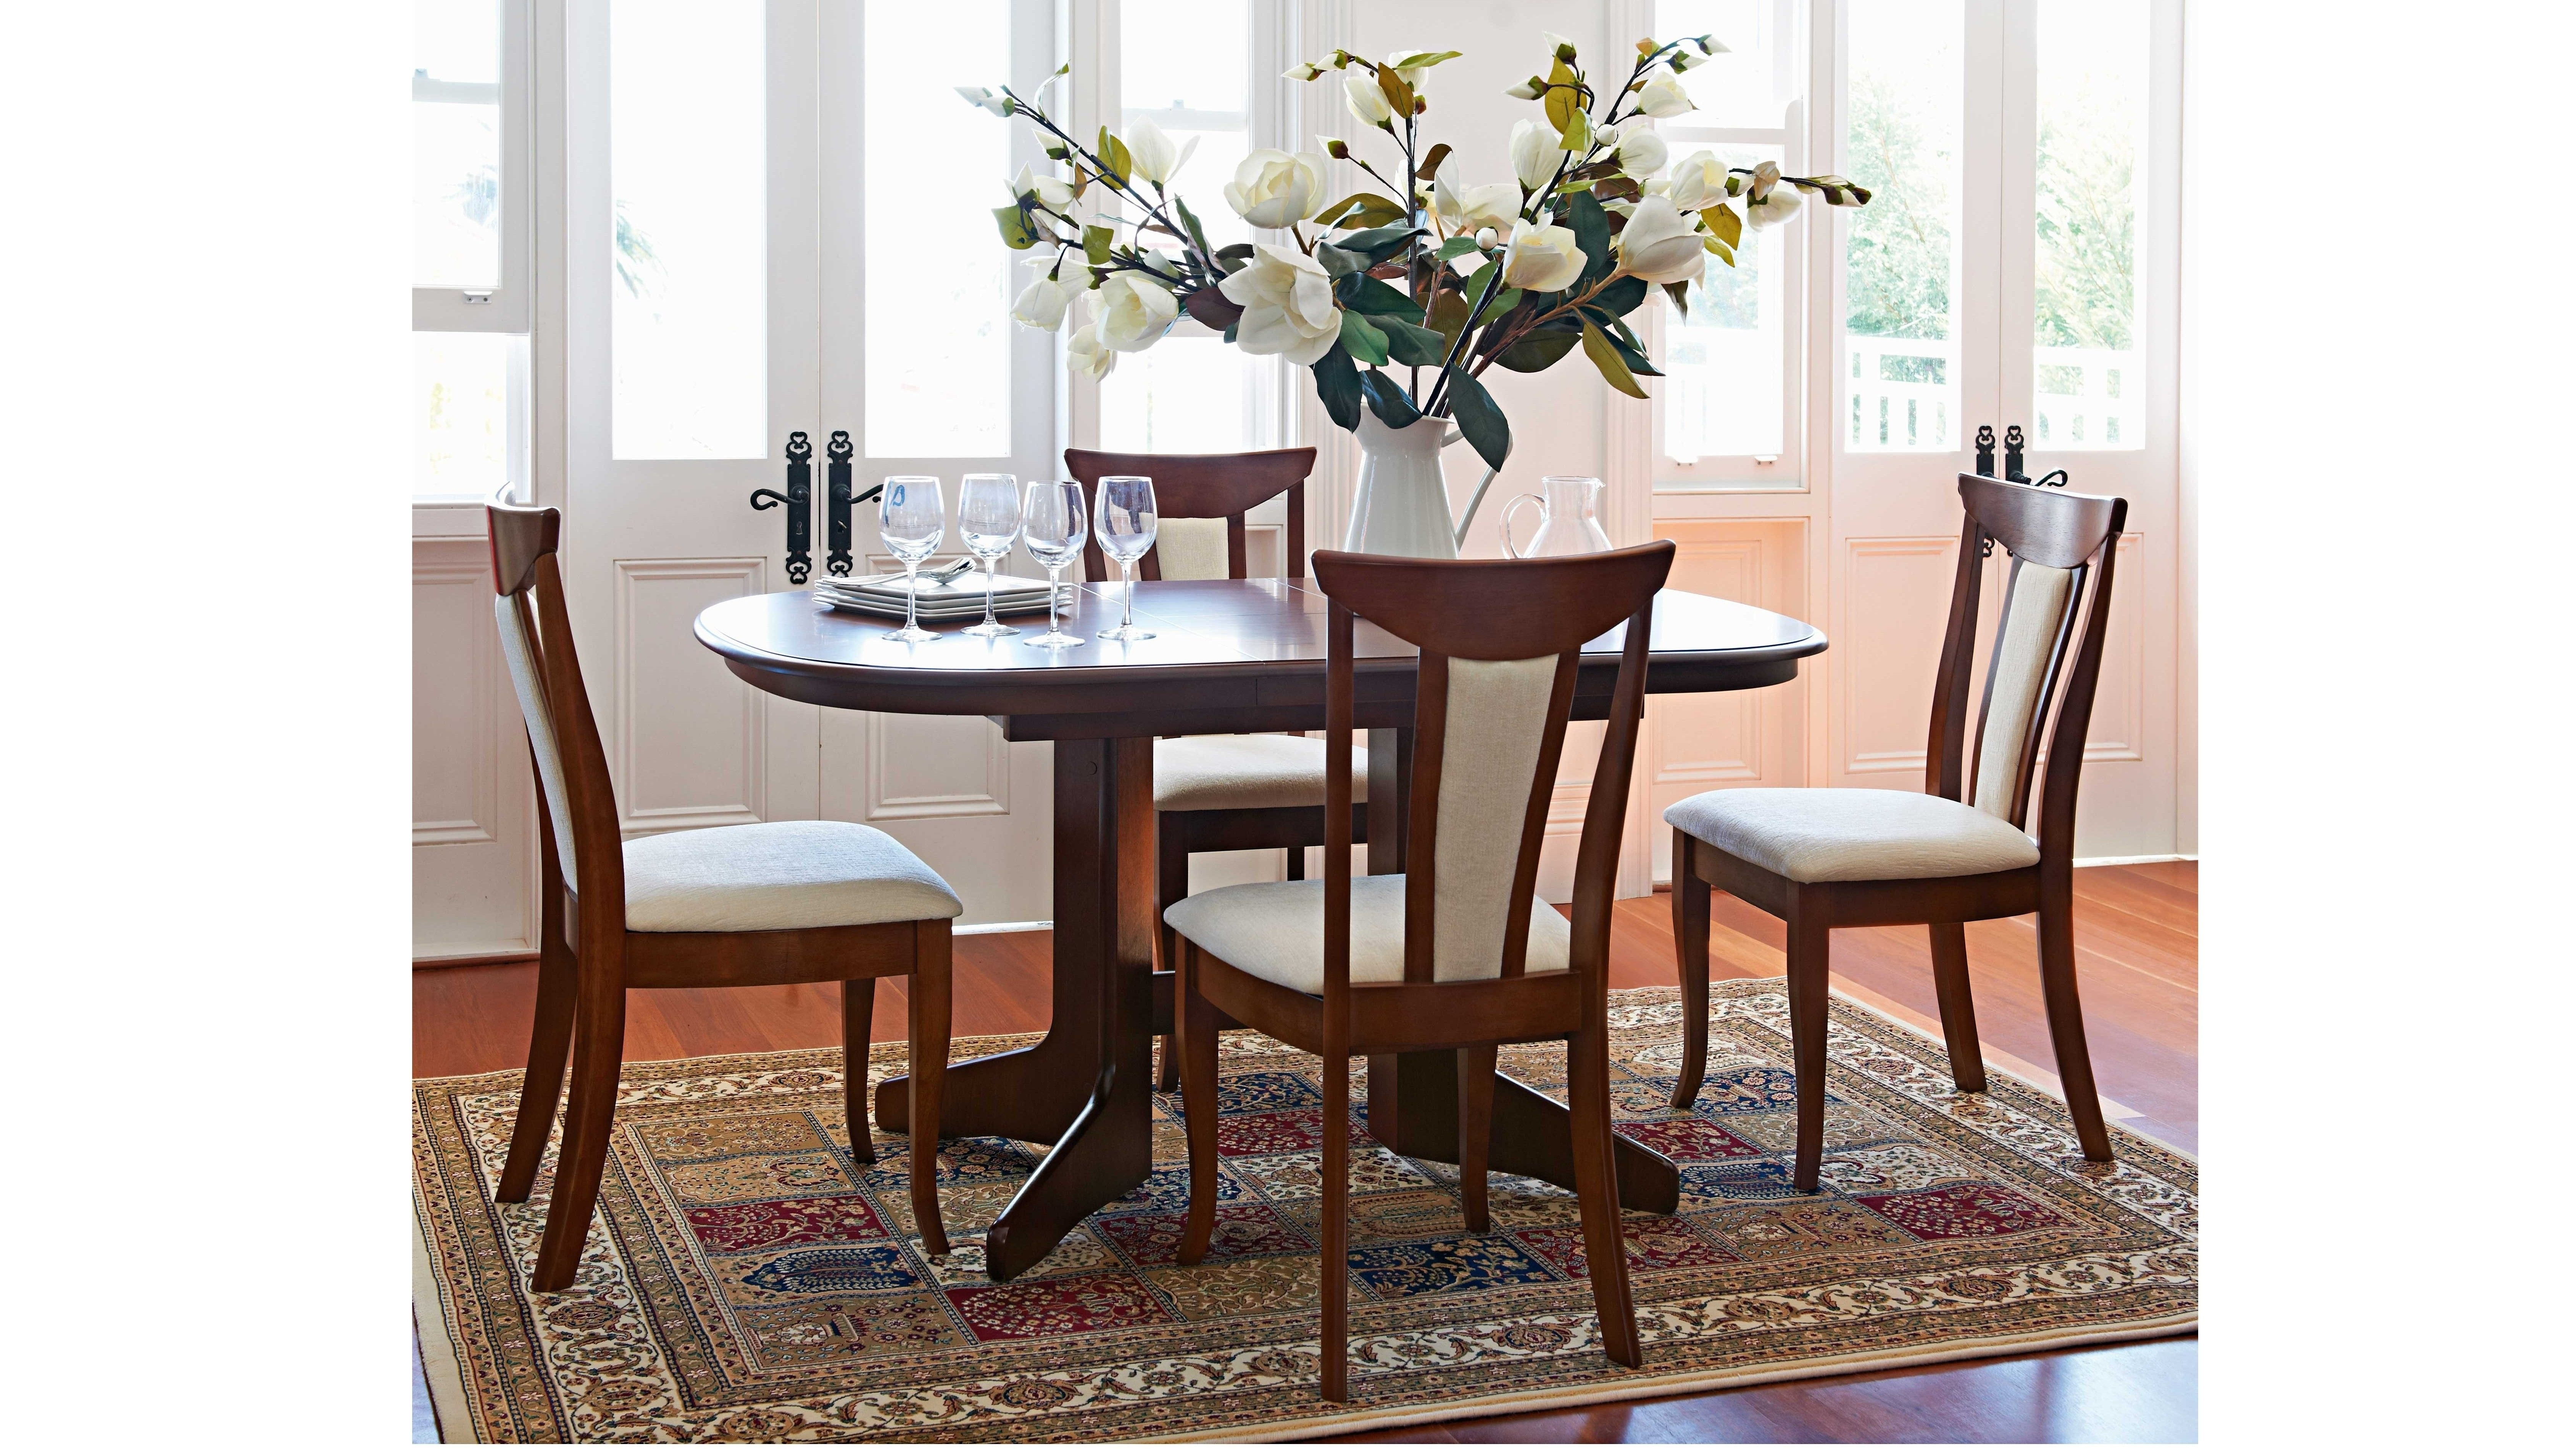 Geneva 5 Piece Dining Set – Harvey Norman | Dining Settings Intended For Most Recently Released Candice Ii 6 Piece Extension Rectangle Dining Sets (View 16 of 20)